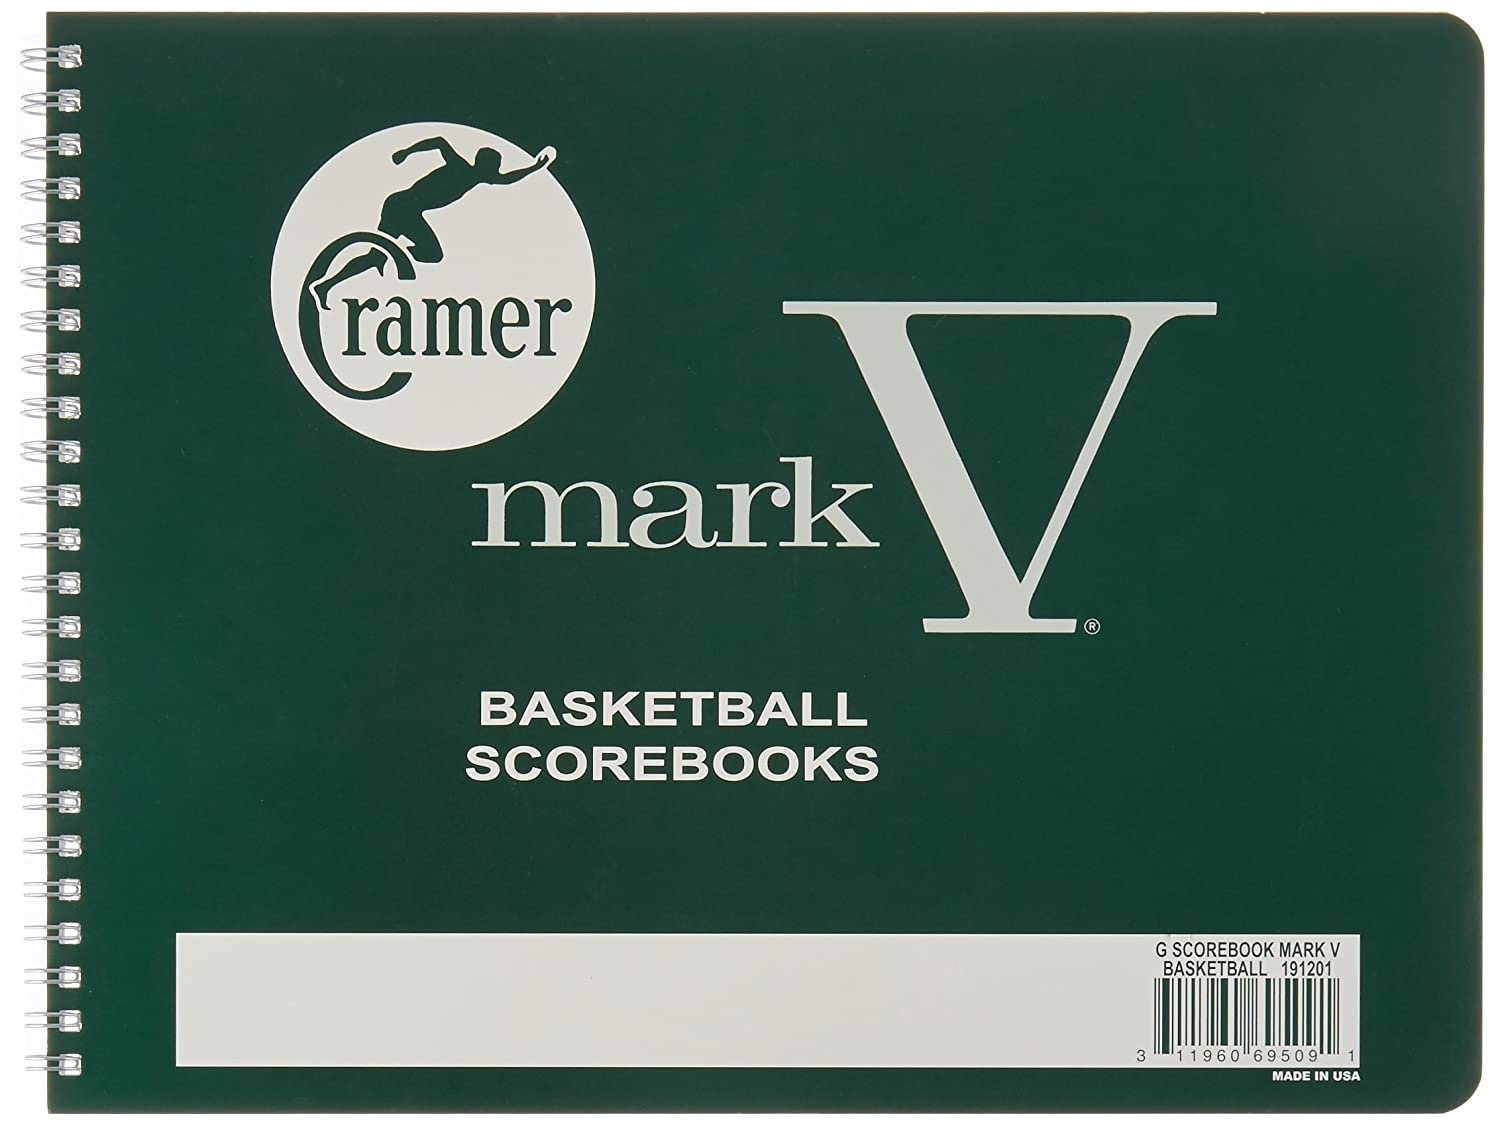 Cramer Scorebook, Mark V, Basketball 191201